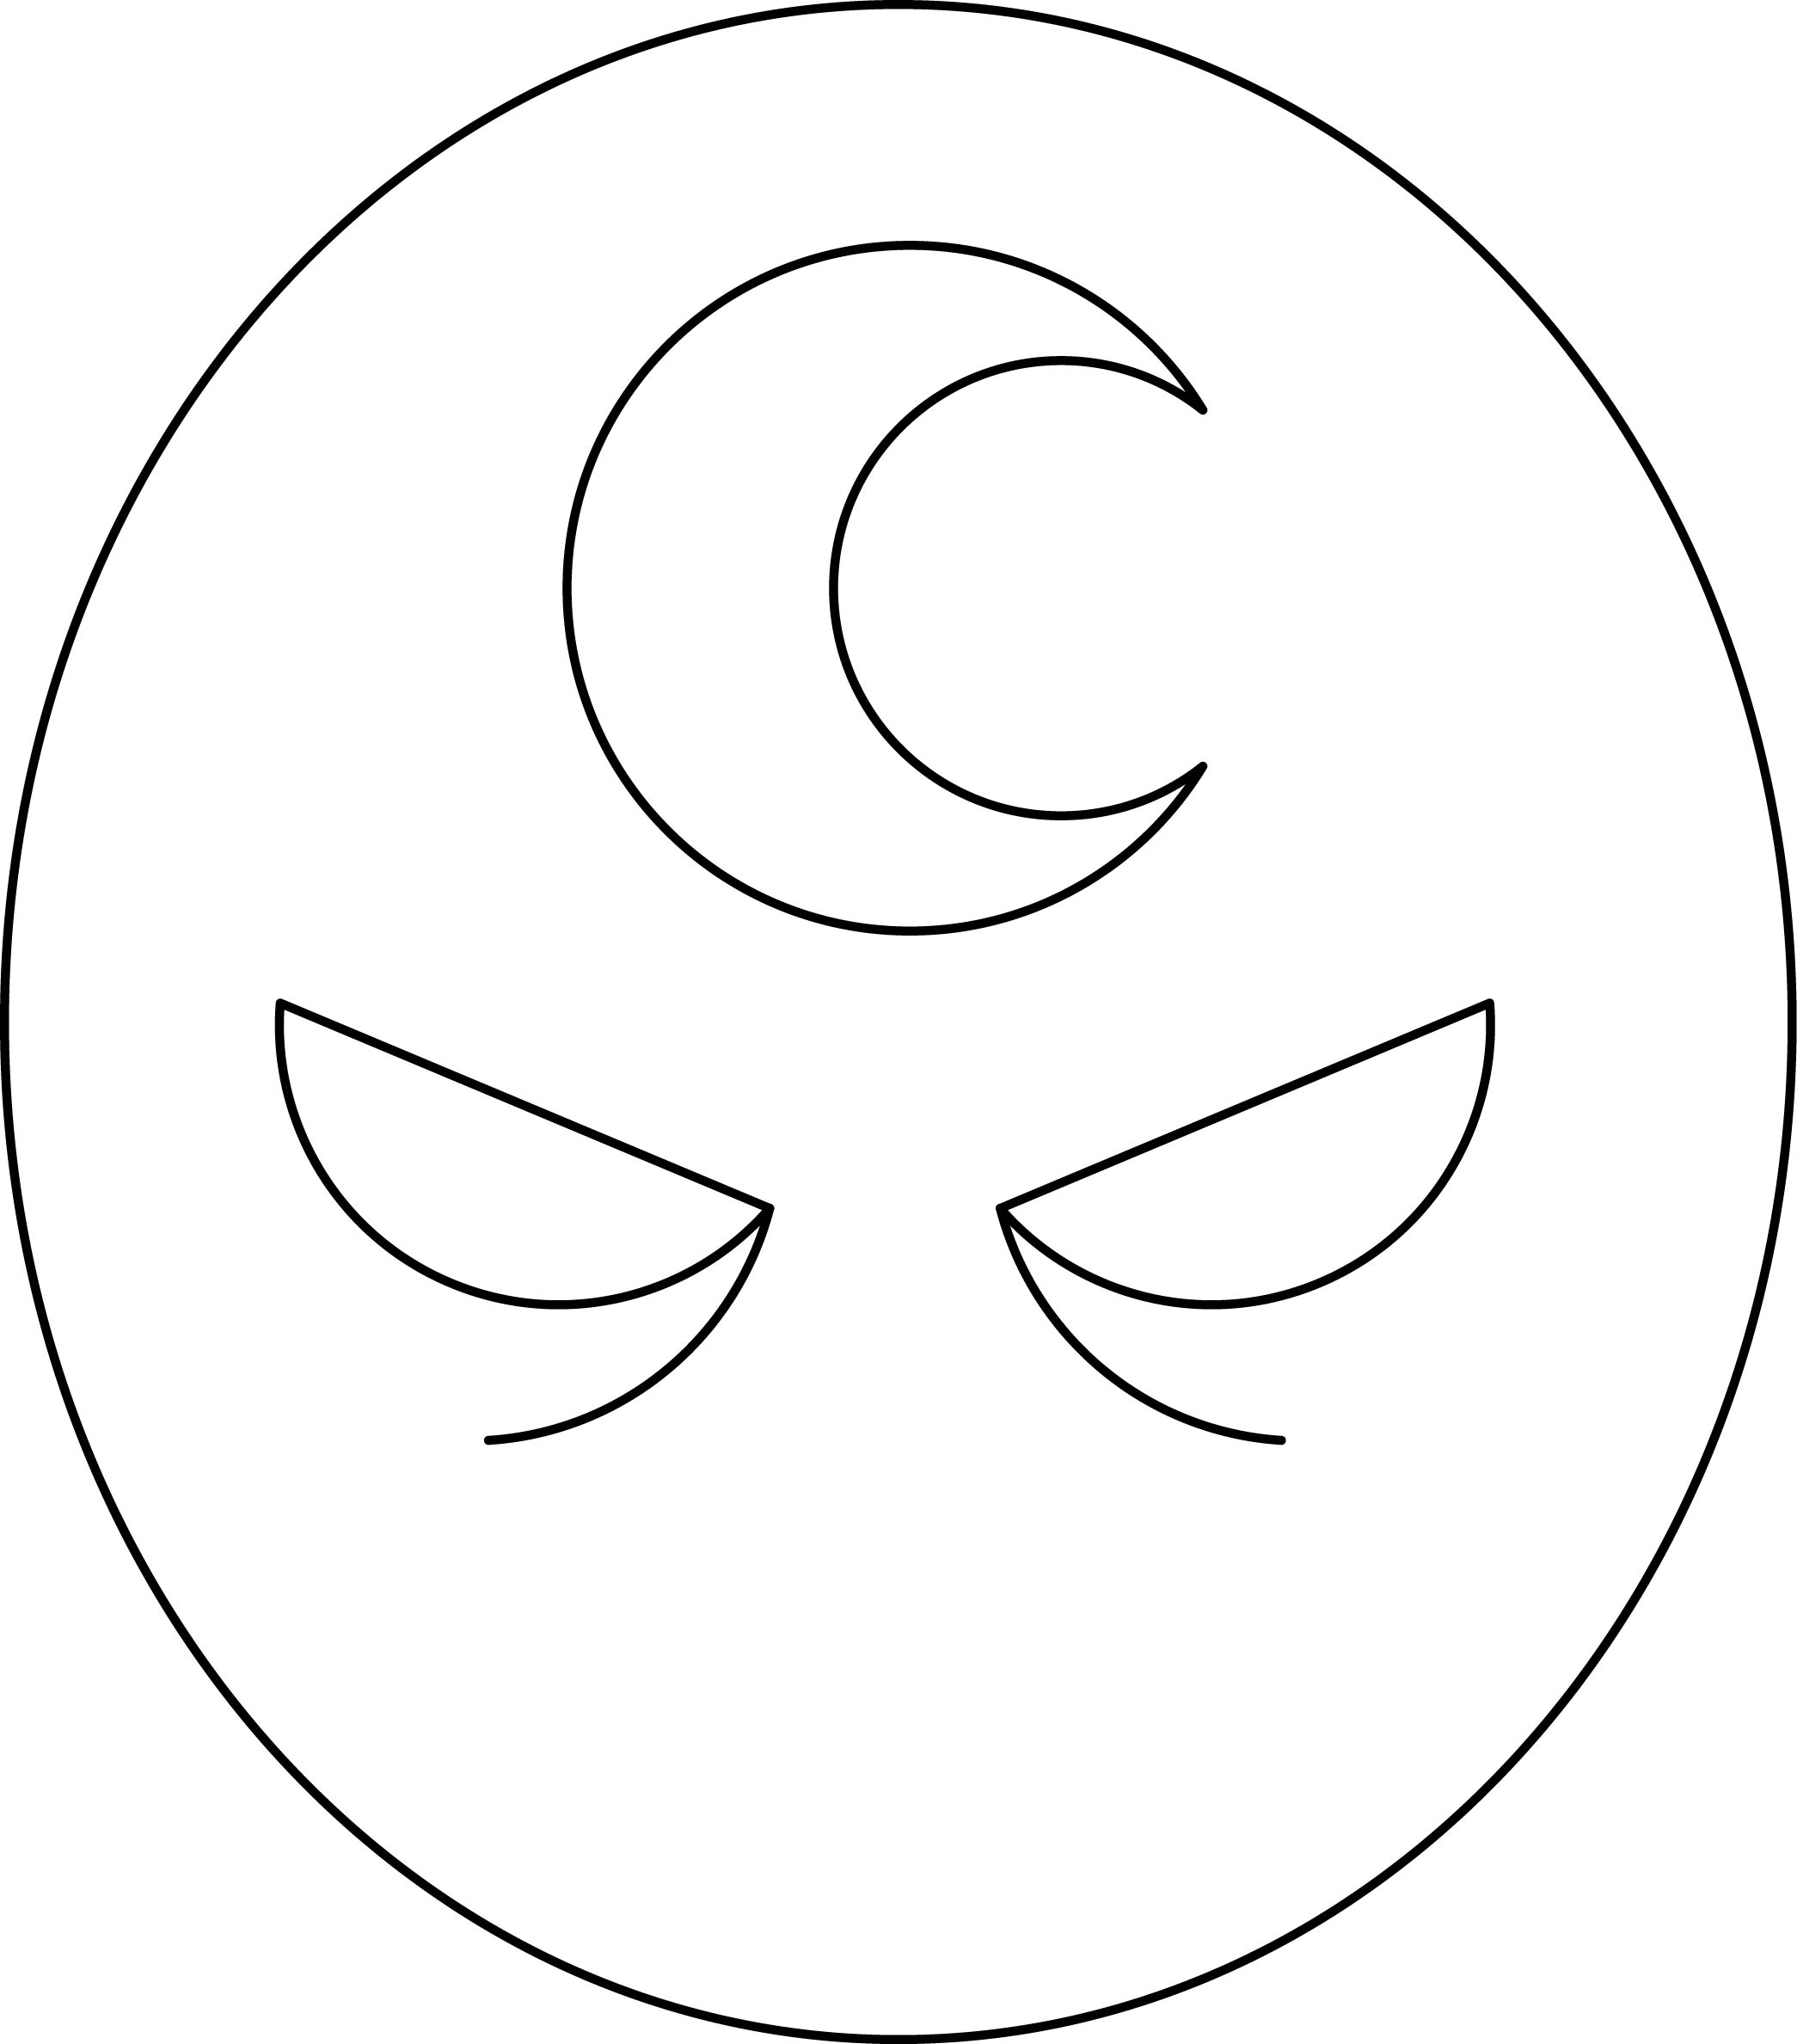 Superhero face coloring page 05